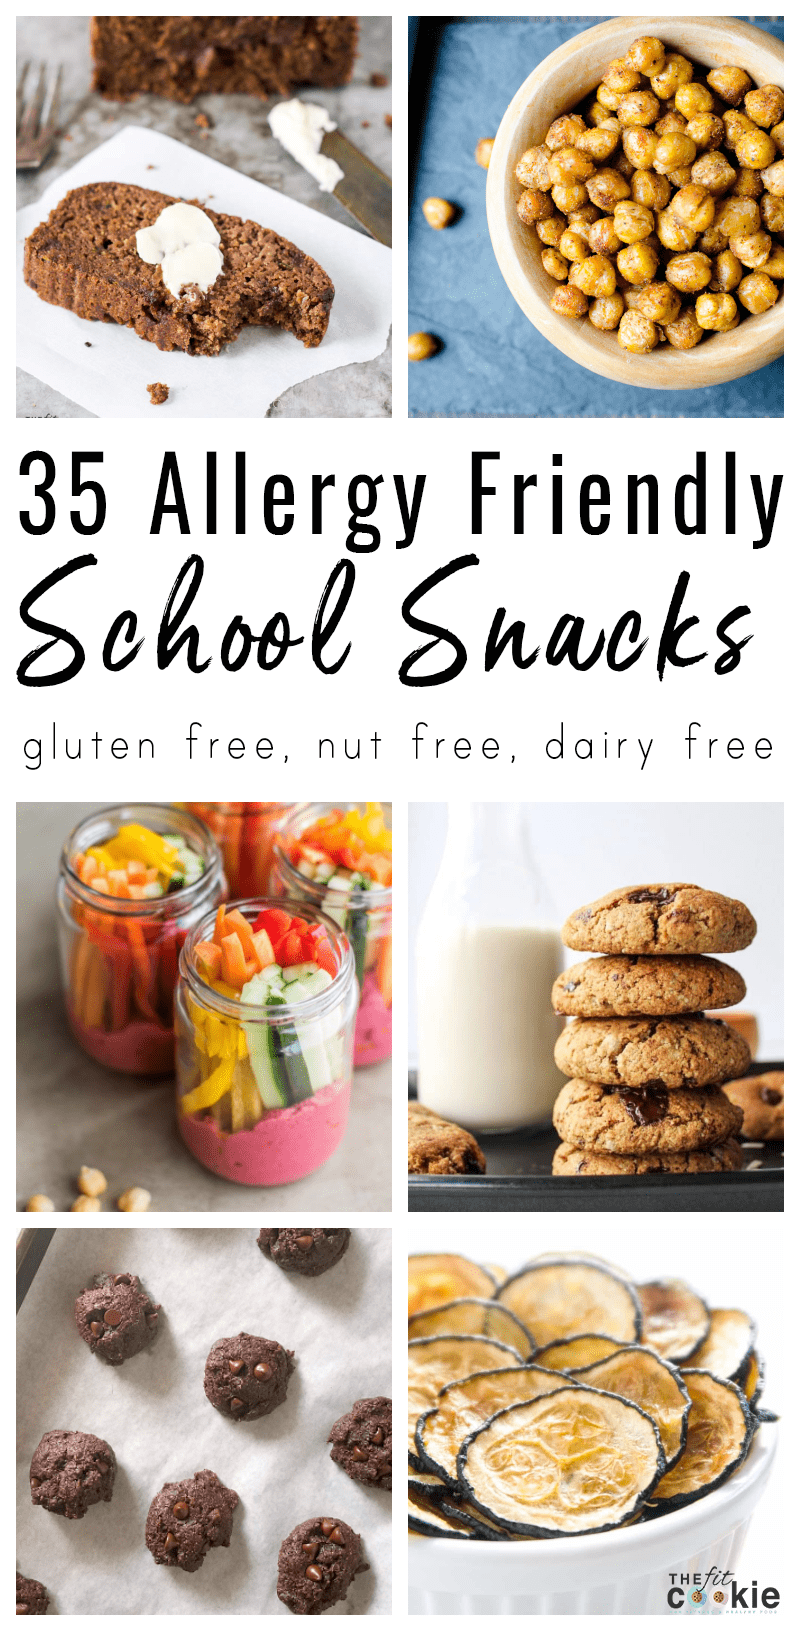 It's back to school time again! If you're on the lookout for allergy friendly snacks for school, then we've got what you're looking for: here are 35 dairy free and gluten free snacks for school! - @TheFitCookie #backtoschool #snacks #glutenfree #dairyfree #nutfree